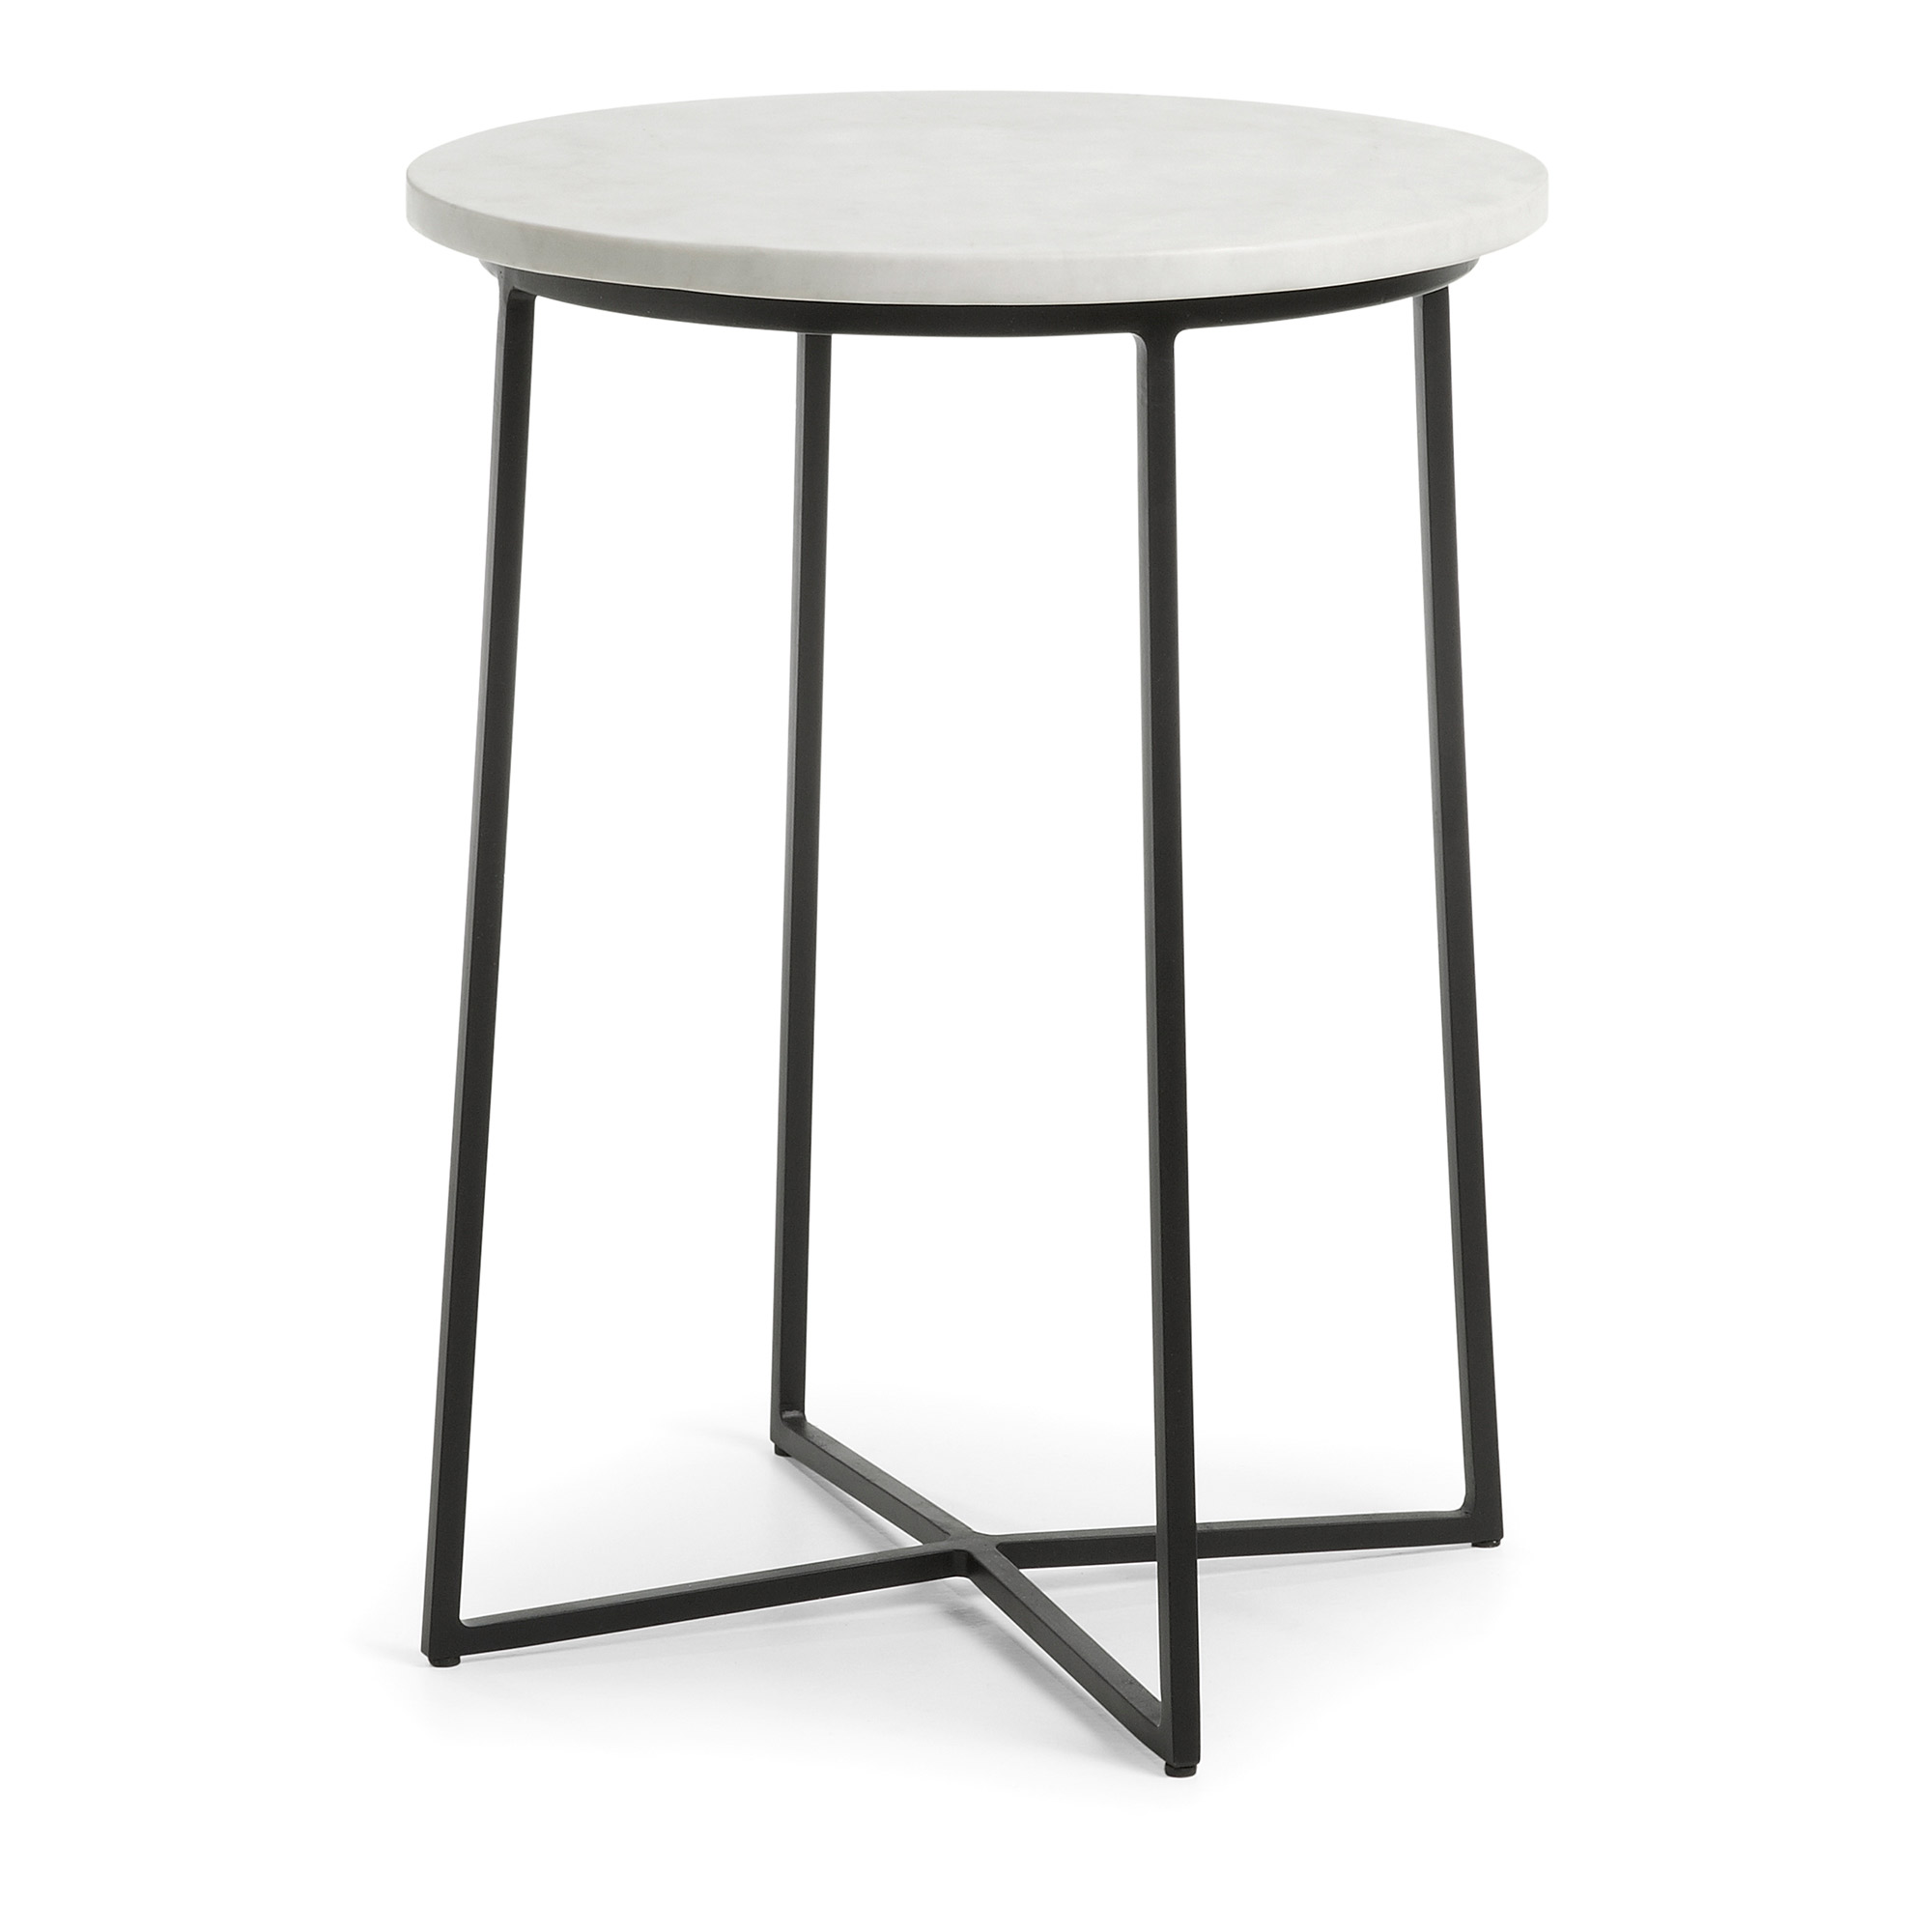 Kave home - table d'appoint bryson b Ø 41 cm